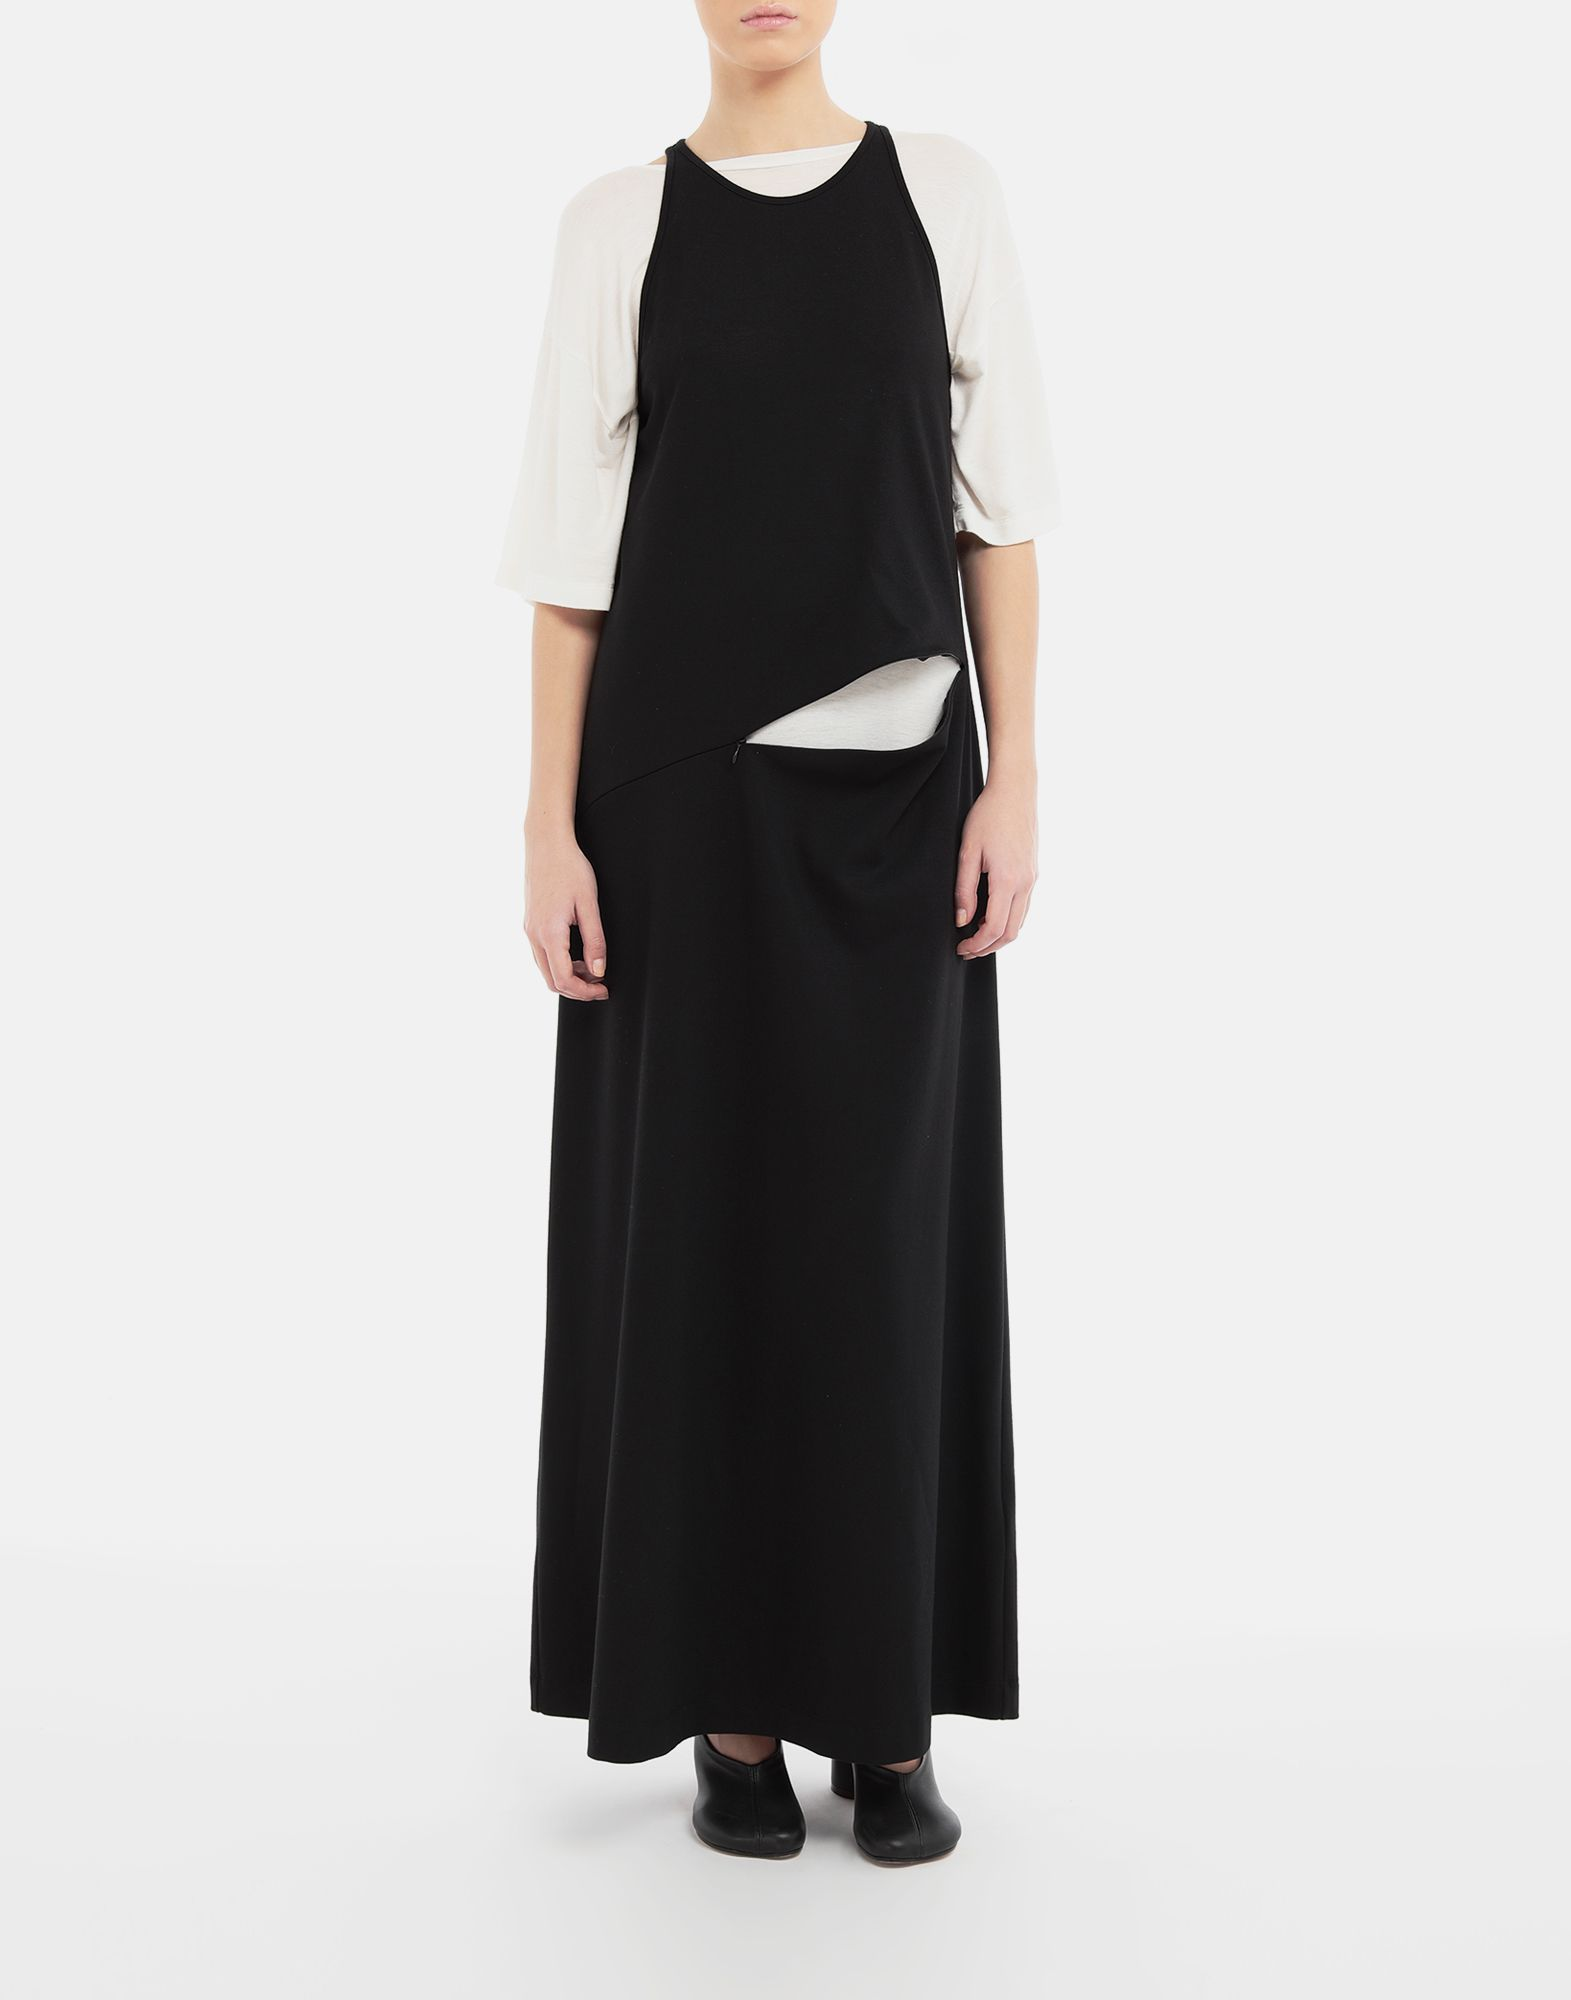 MM6 MAISON MARGIELA Two-part dress Dress Woman d